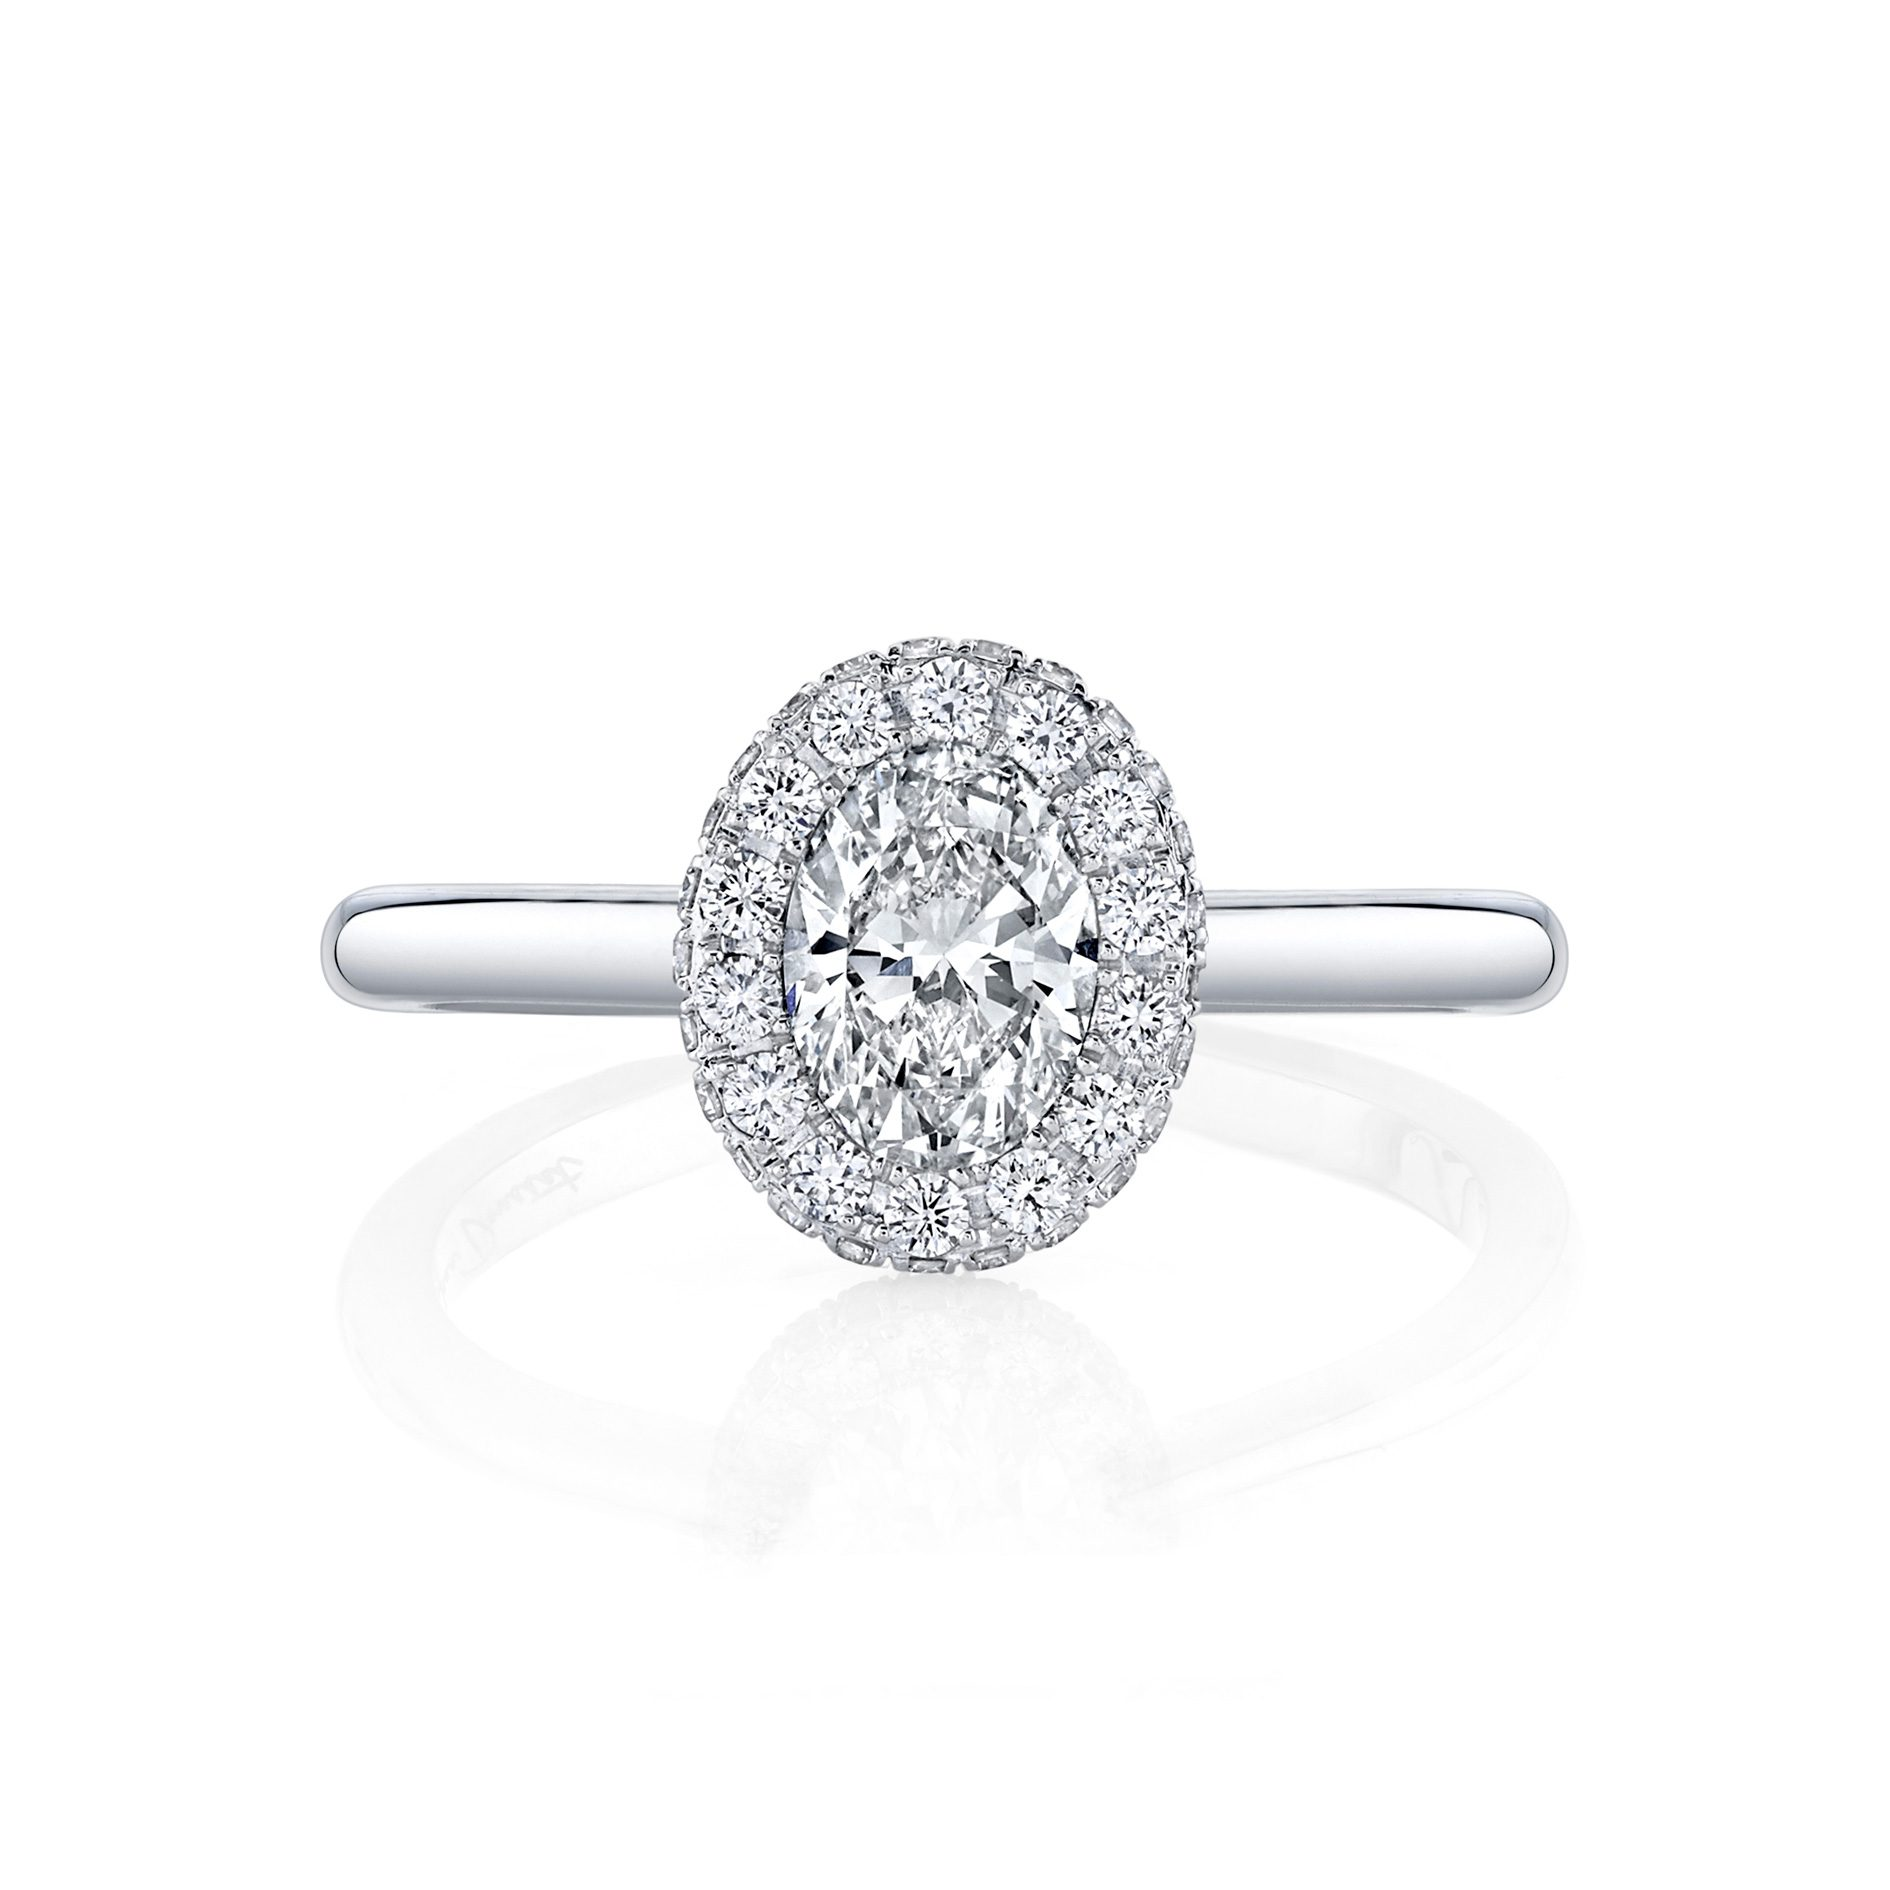 Colette Oval Seamless Halo® Engagement Ring with a solid band in 18k White Gold by Oui Front View by Jean Dousset